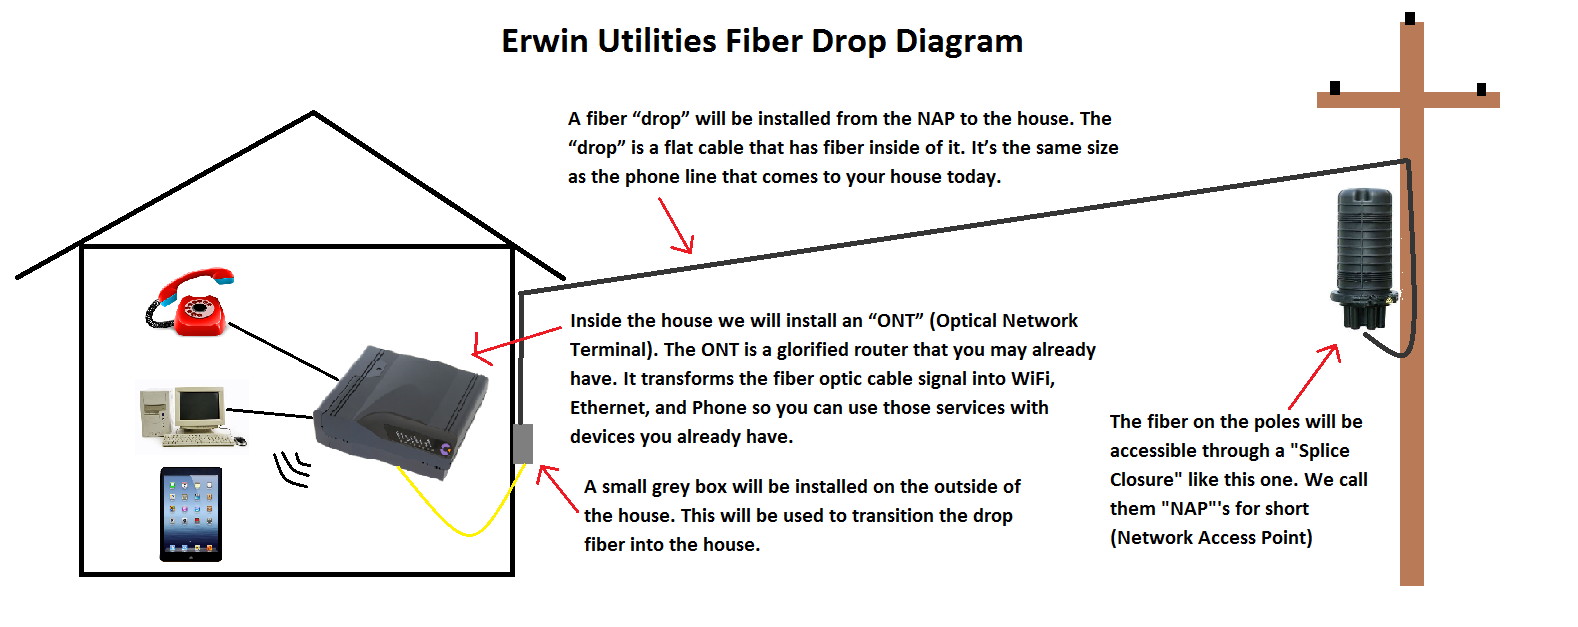 Wiring Home For Internet And Cable Solutions Diagram Fiber Diagrams